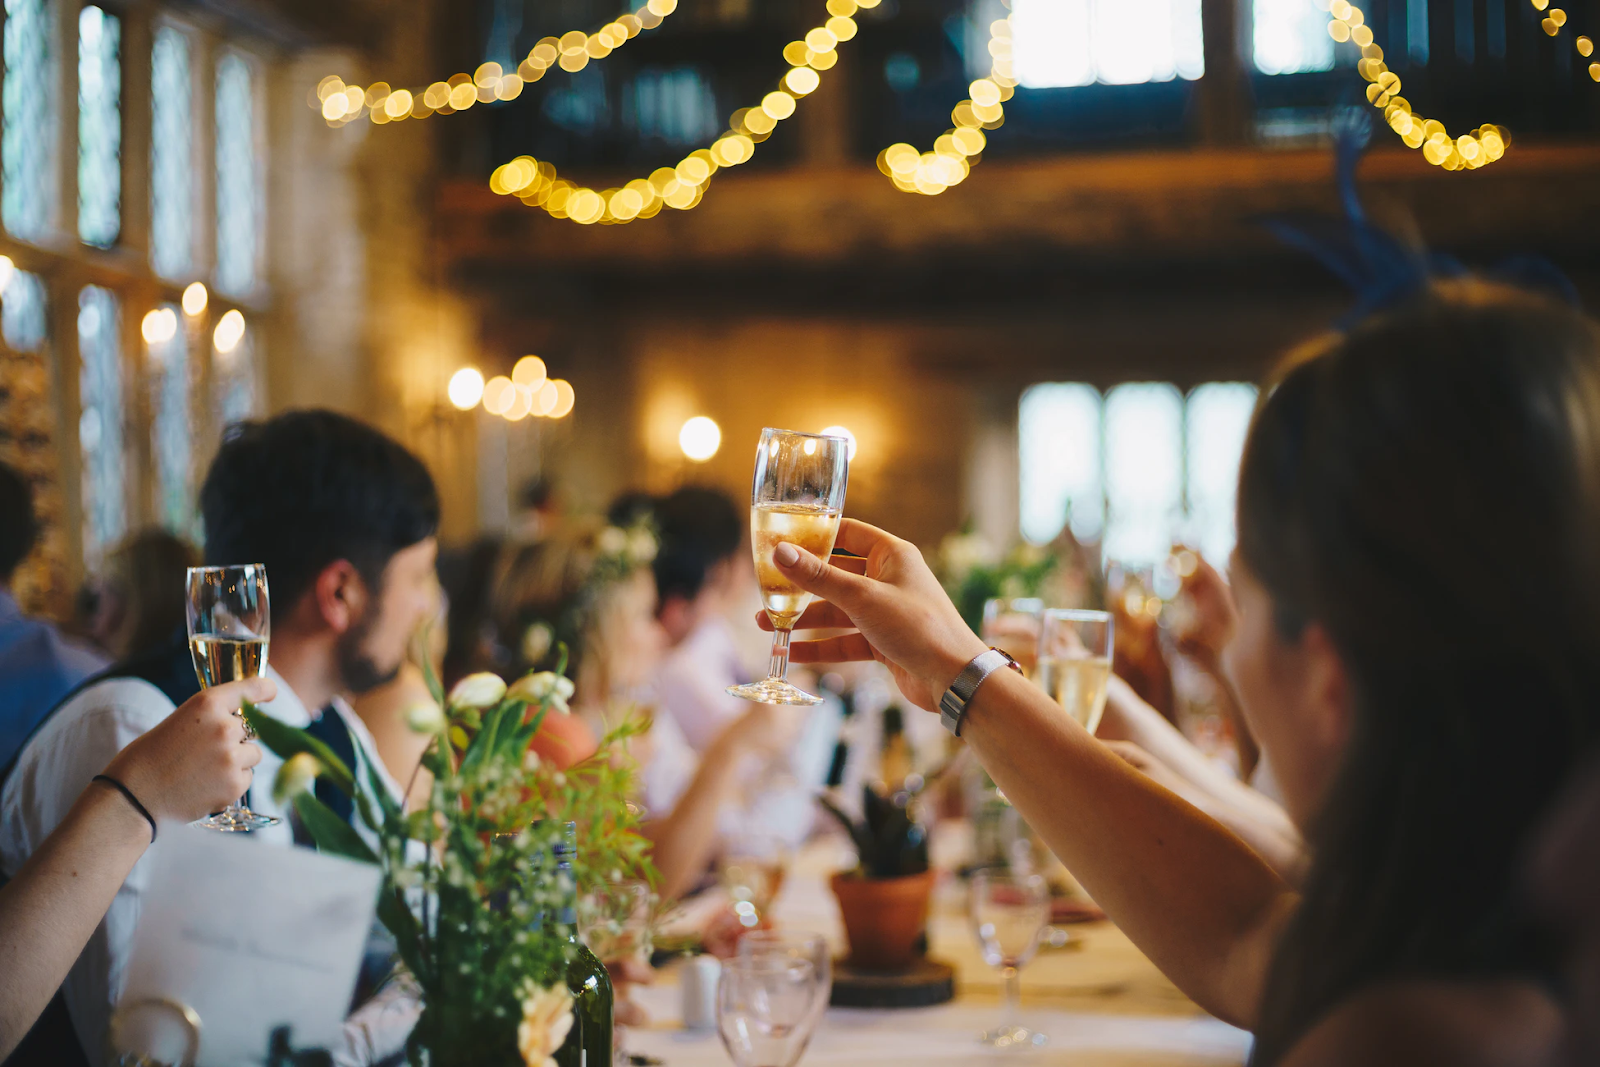 Group celebrating at a wedding with champagne and a toast.